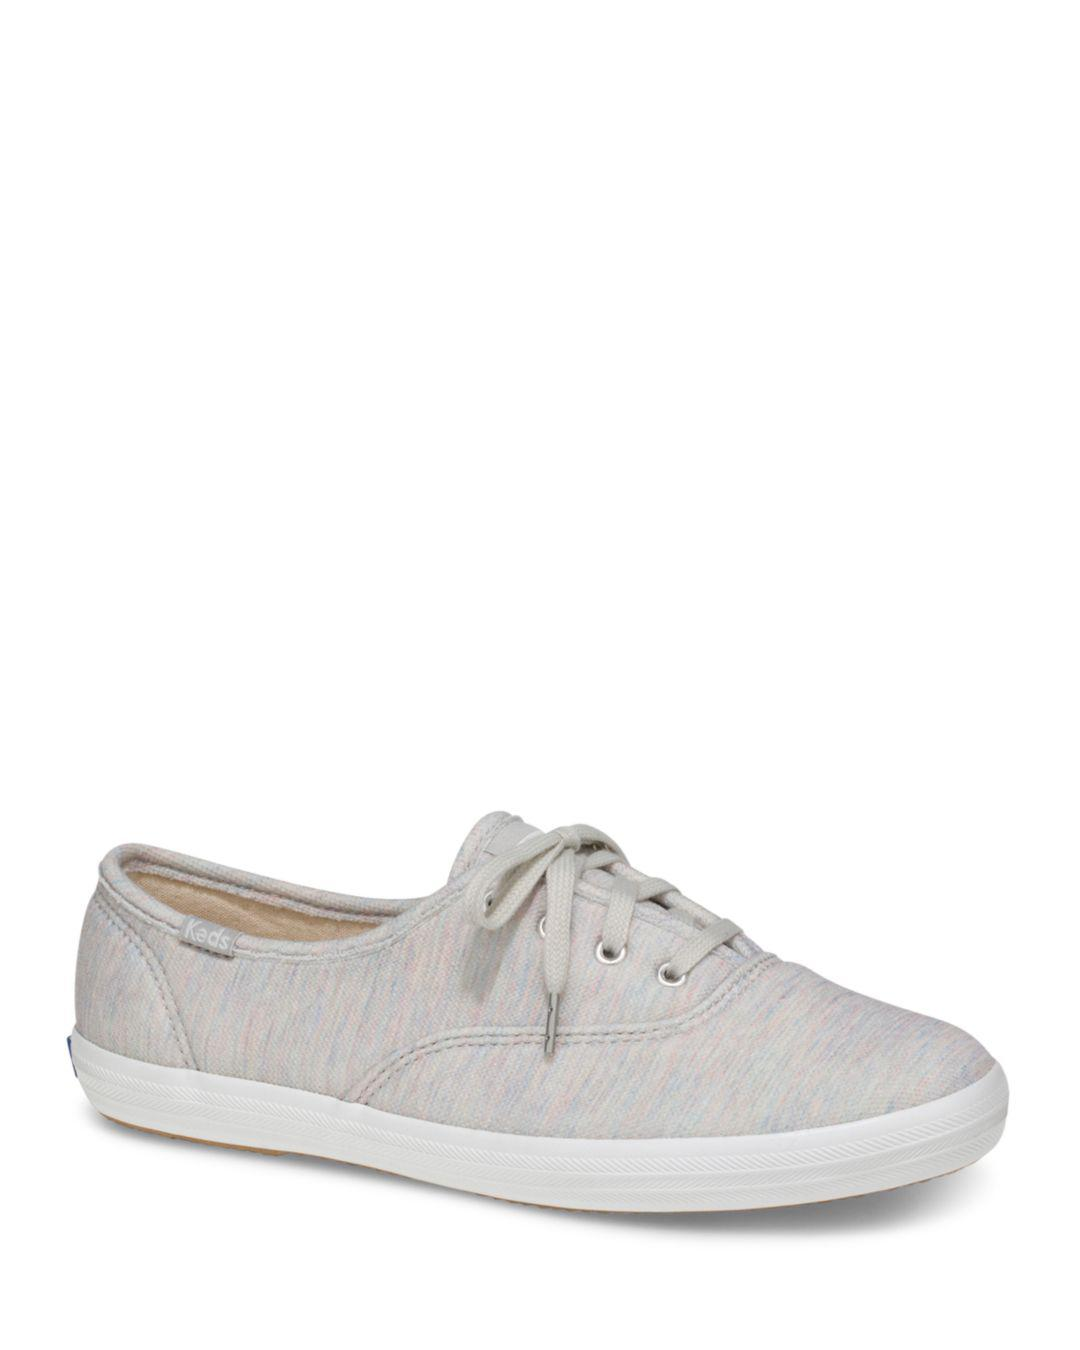 c5e7ea7b72b Lyst - Keds Women s Champion Jersey Lace Up Sneakers in Gray